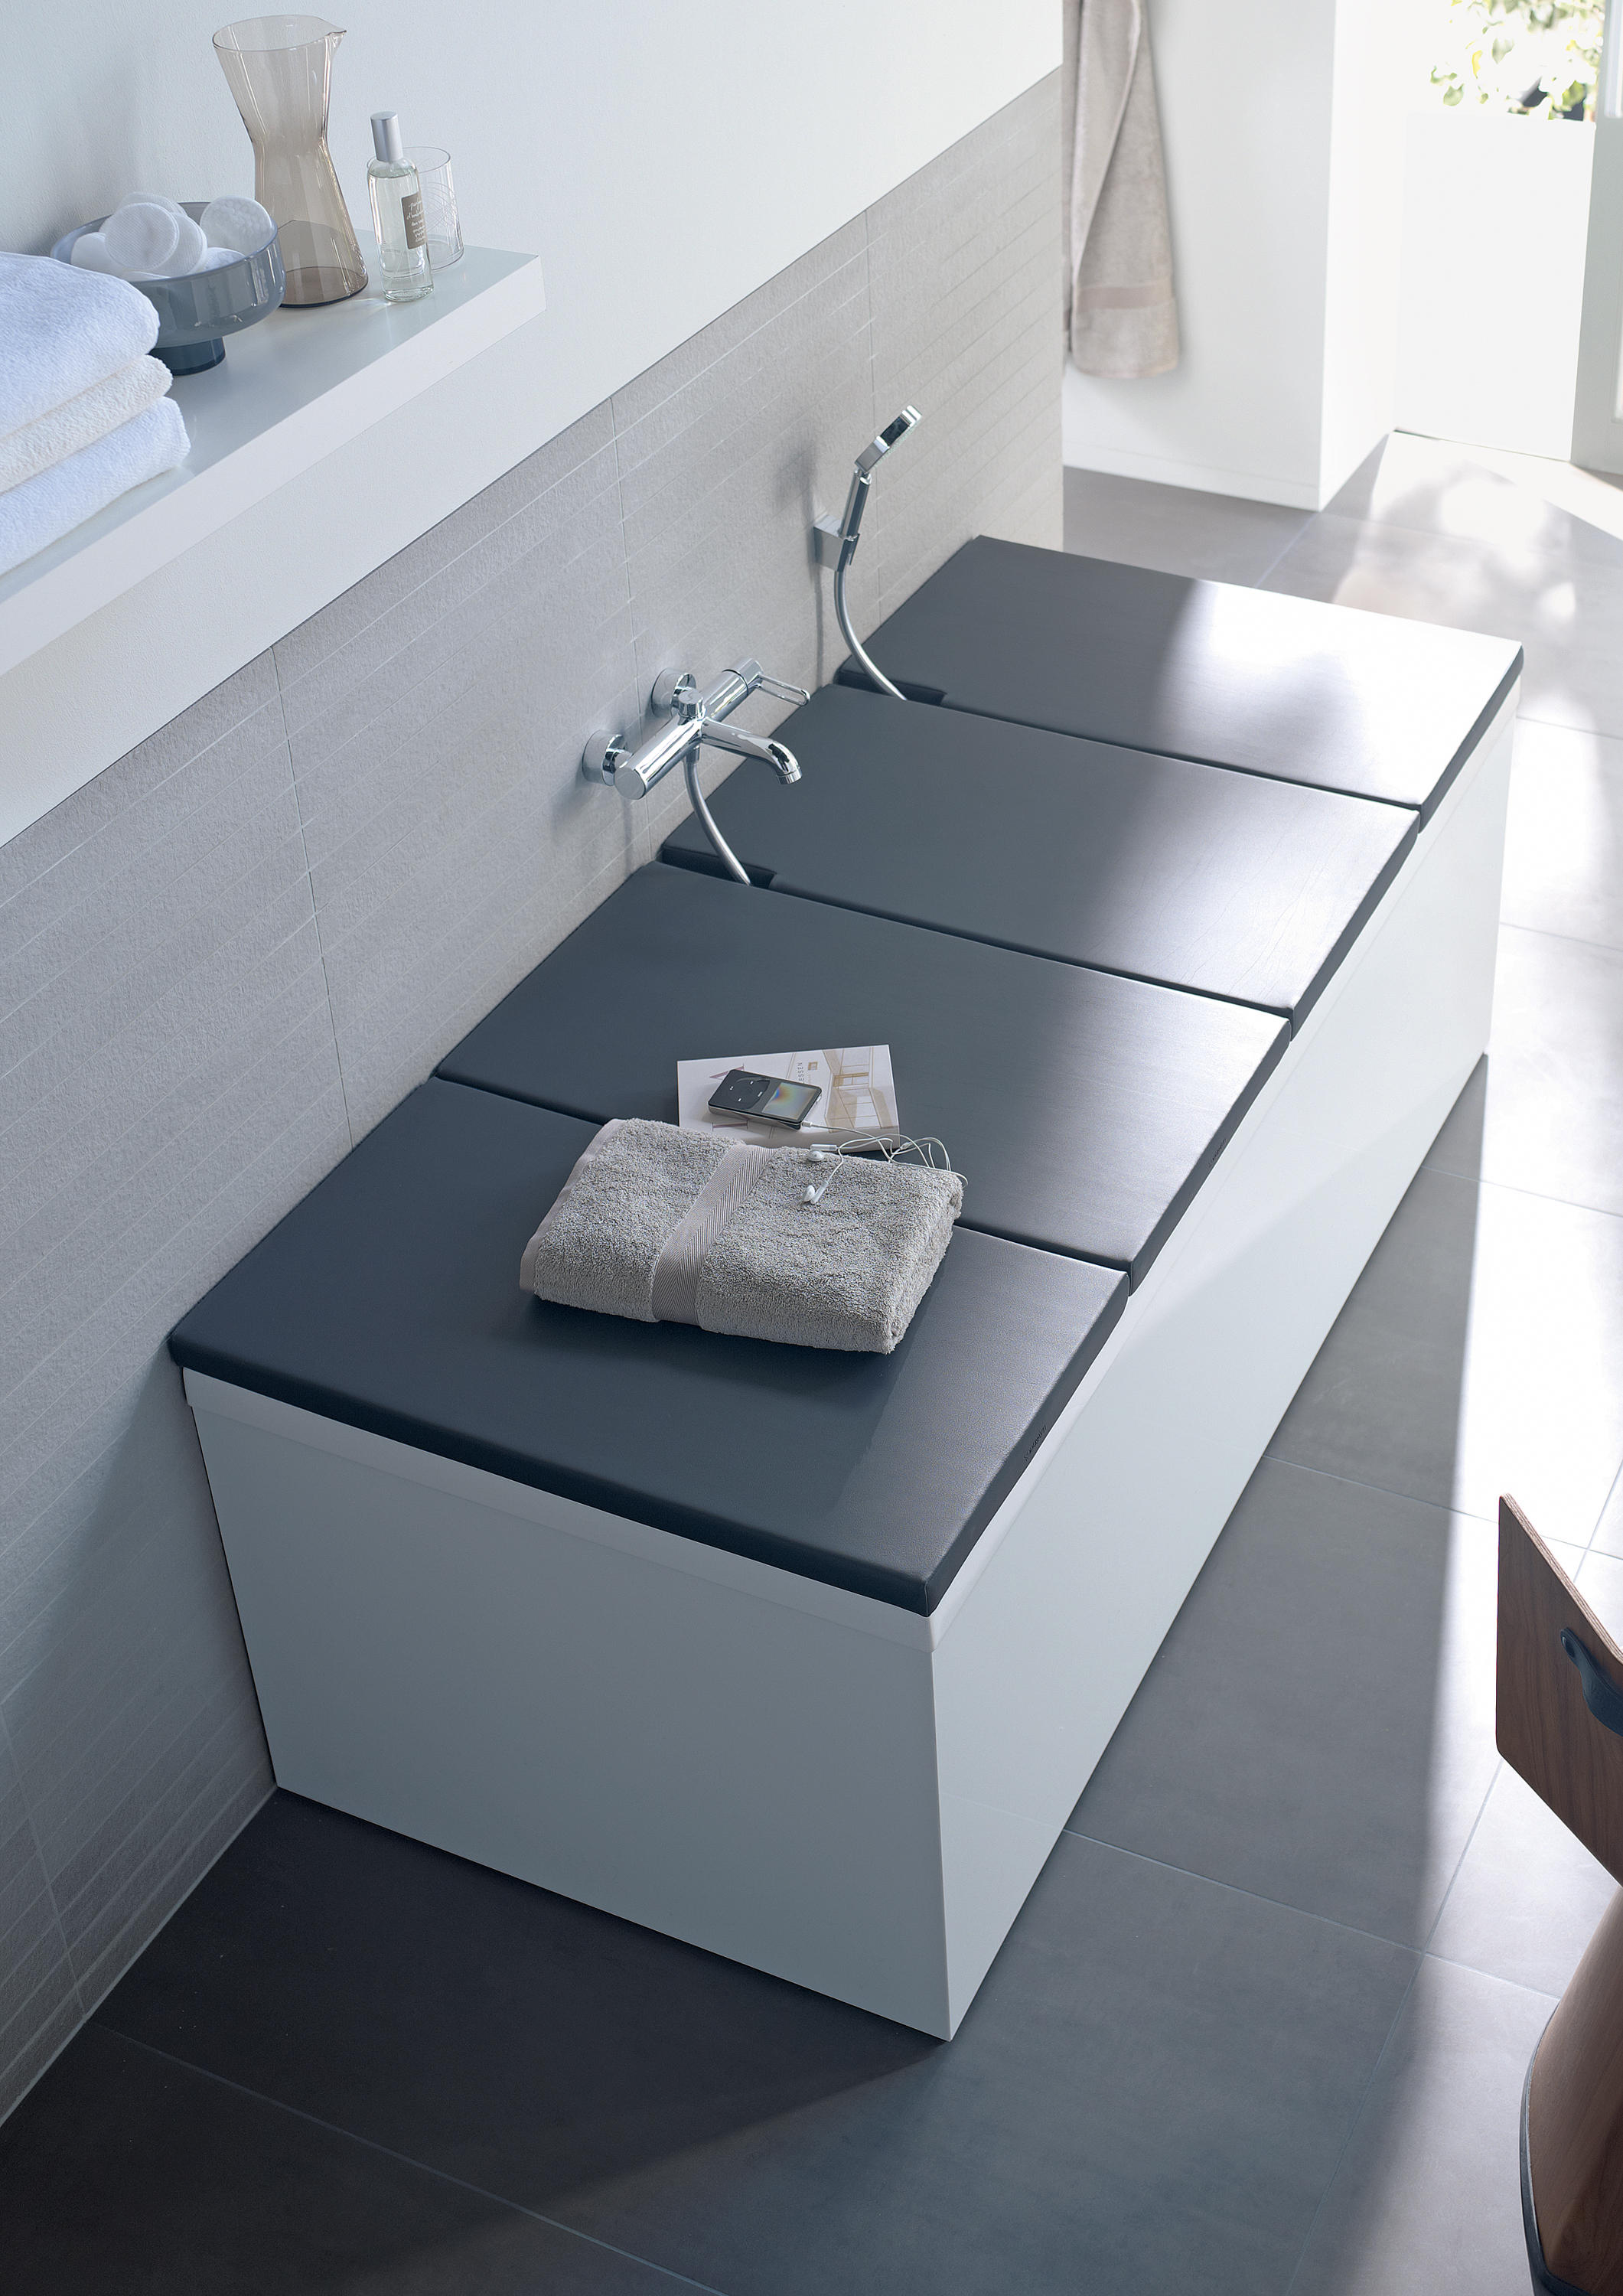 shelves wood by corian bathtub shelf from h and tray dressage graff product in en solid